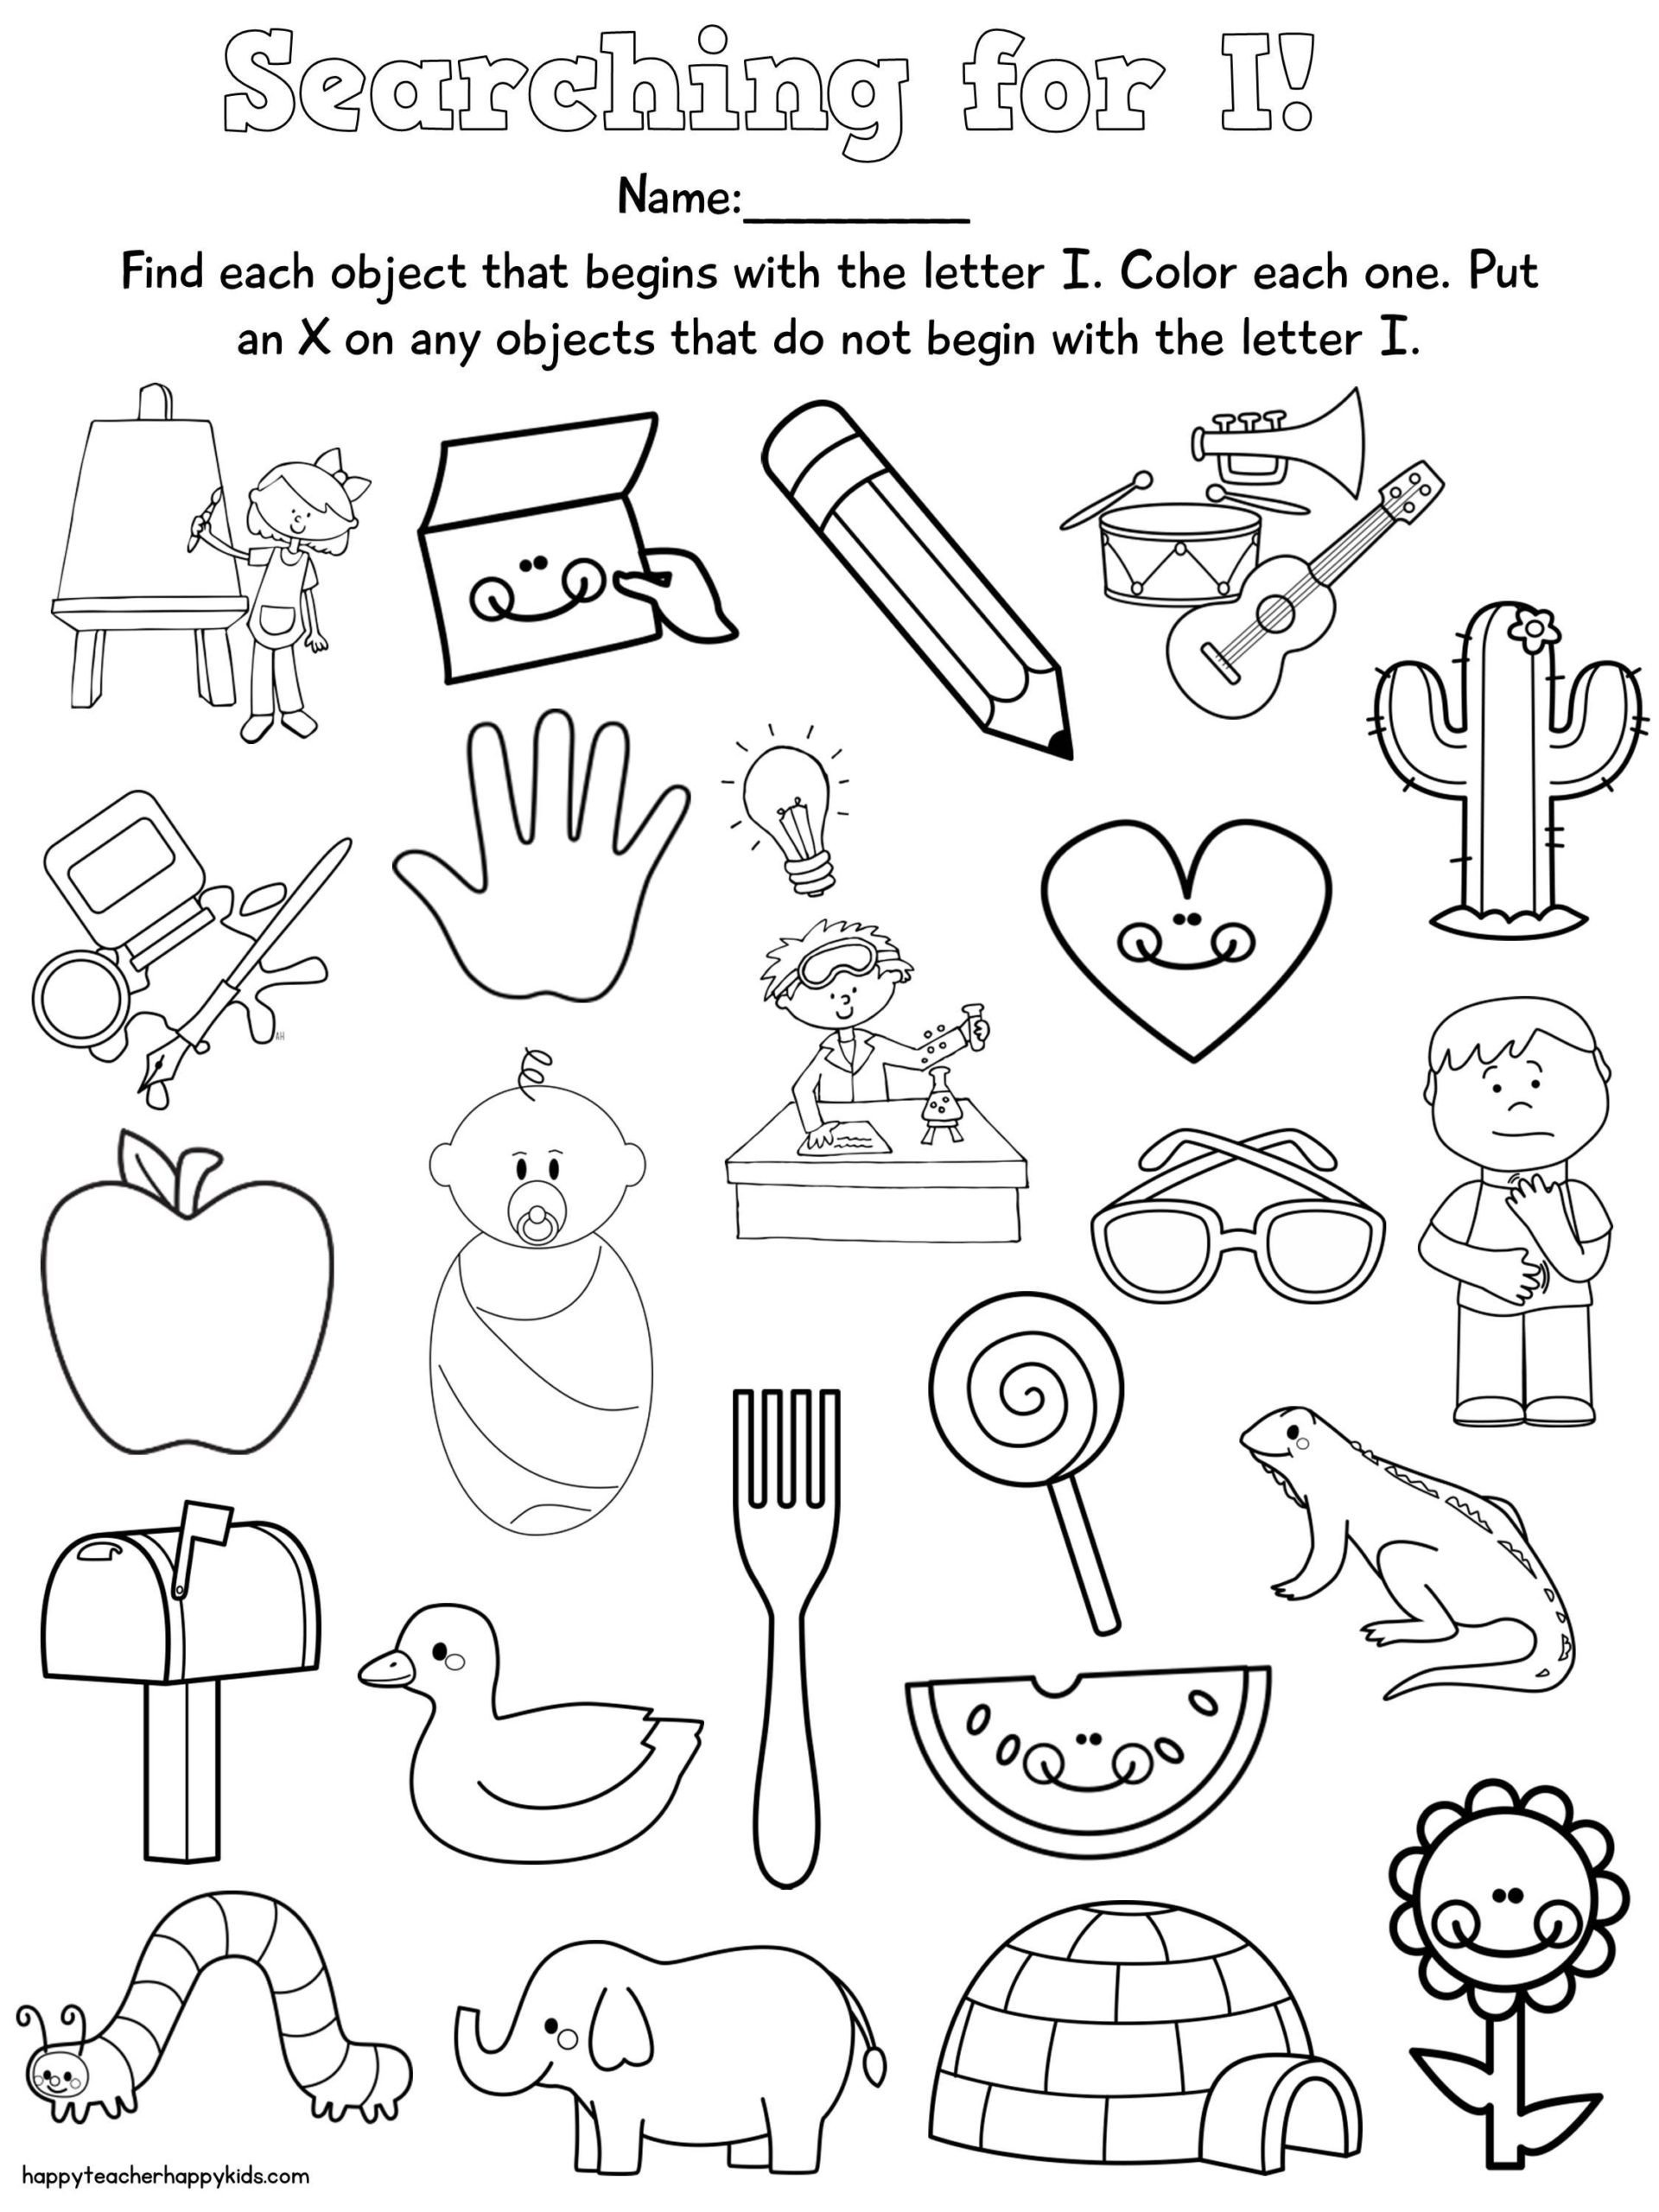 Free Syllable Worksheets for Kindergarten Letter Worksheets for Kids Kindergarten songs Letters